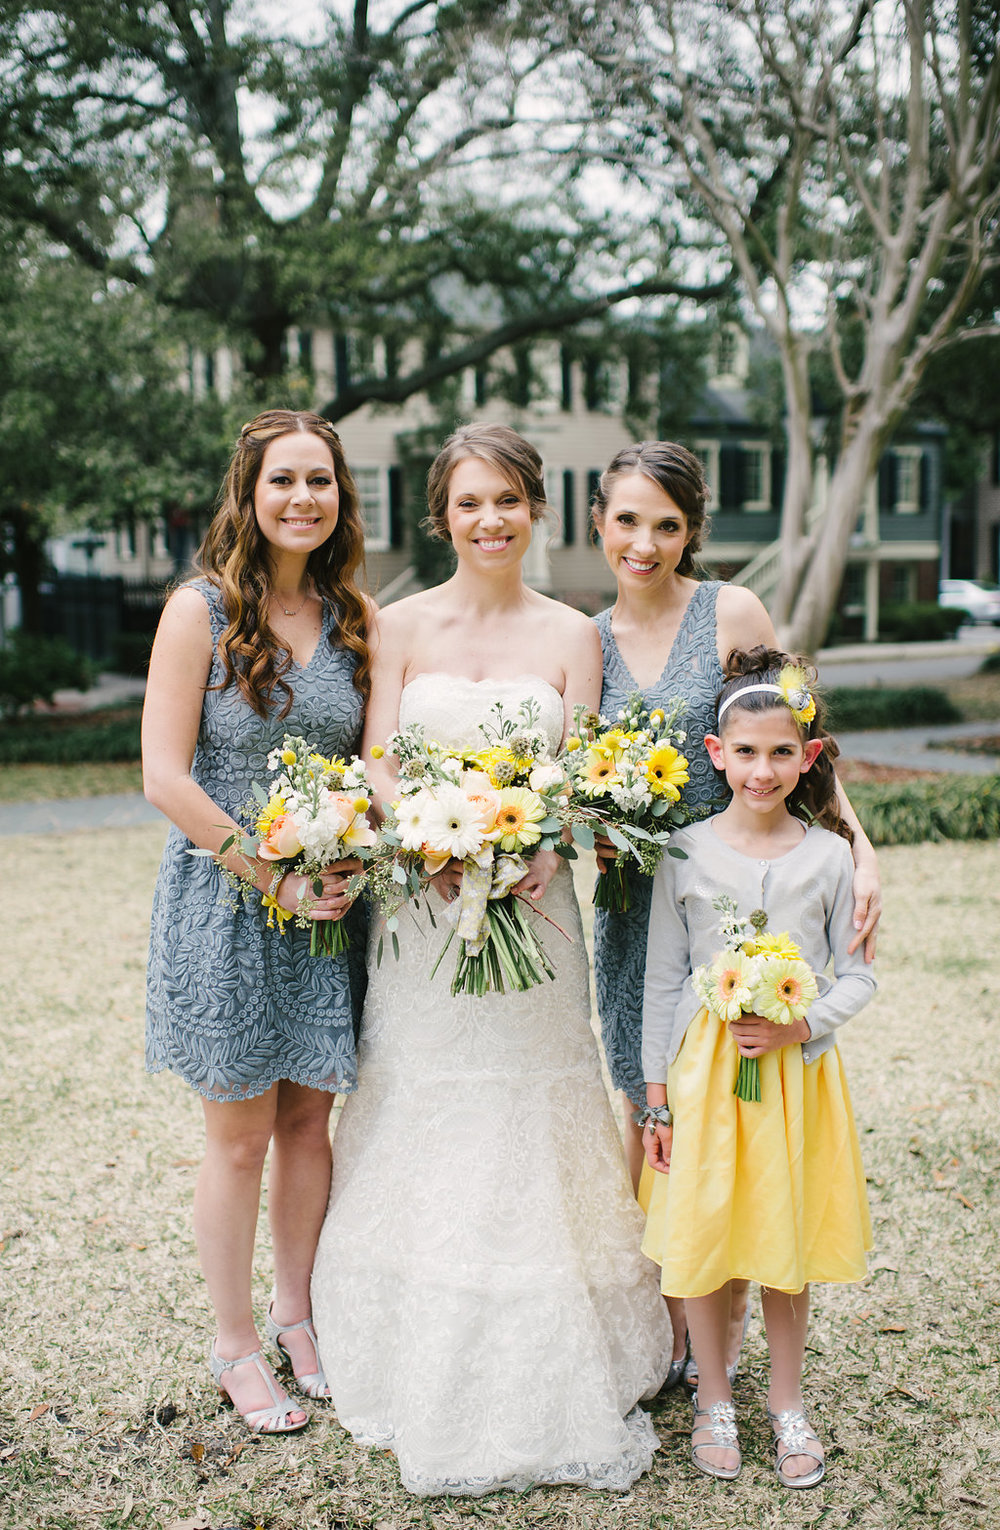 krista-and-clay-rach-loves-troy-photography-ivory-and-beau-bridal-boutique-savannah-wedding-planner-savannah-weddings-savannah-bridal-charles-h-morris-center-wedding-savannah-historic-wedding-savannah-weddings-savannah-weding-planner-17.jpg